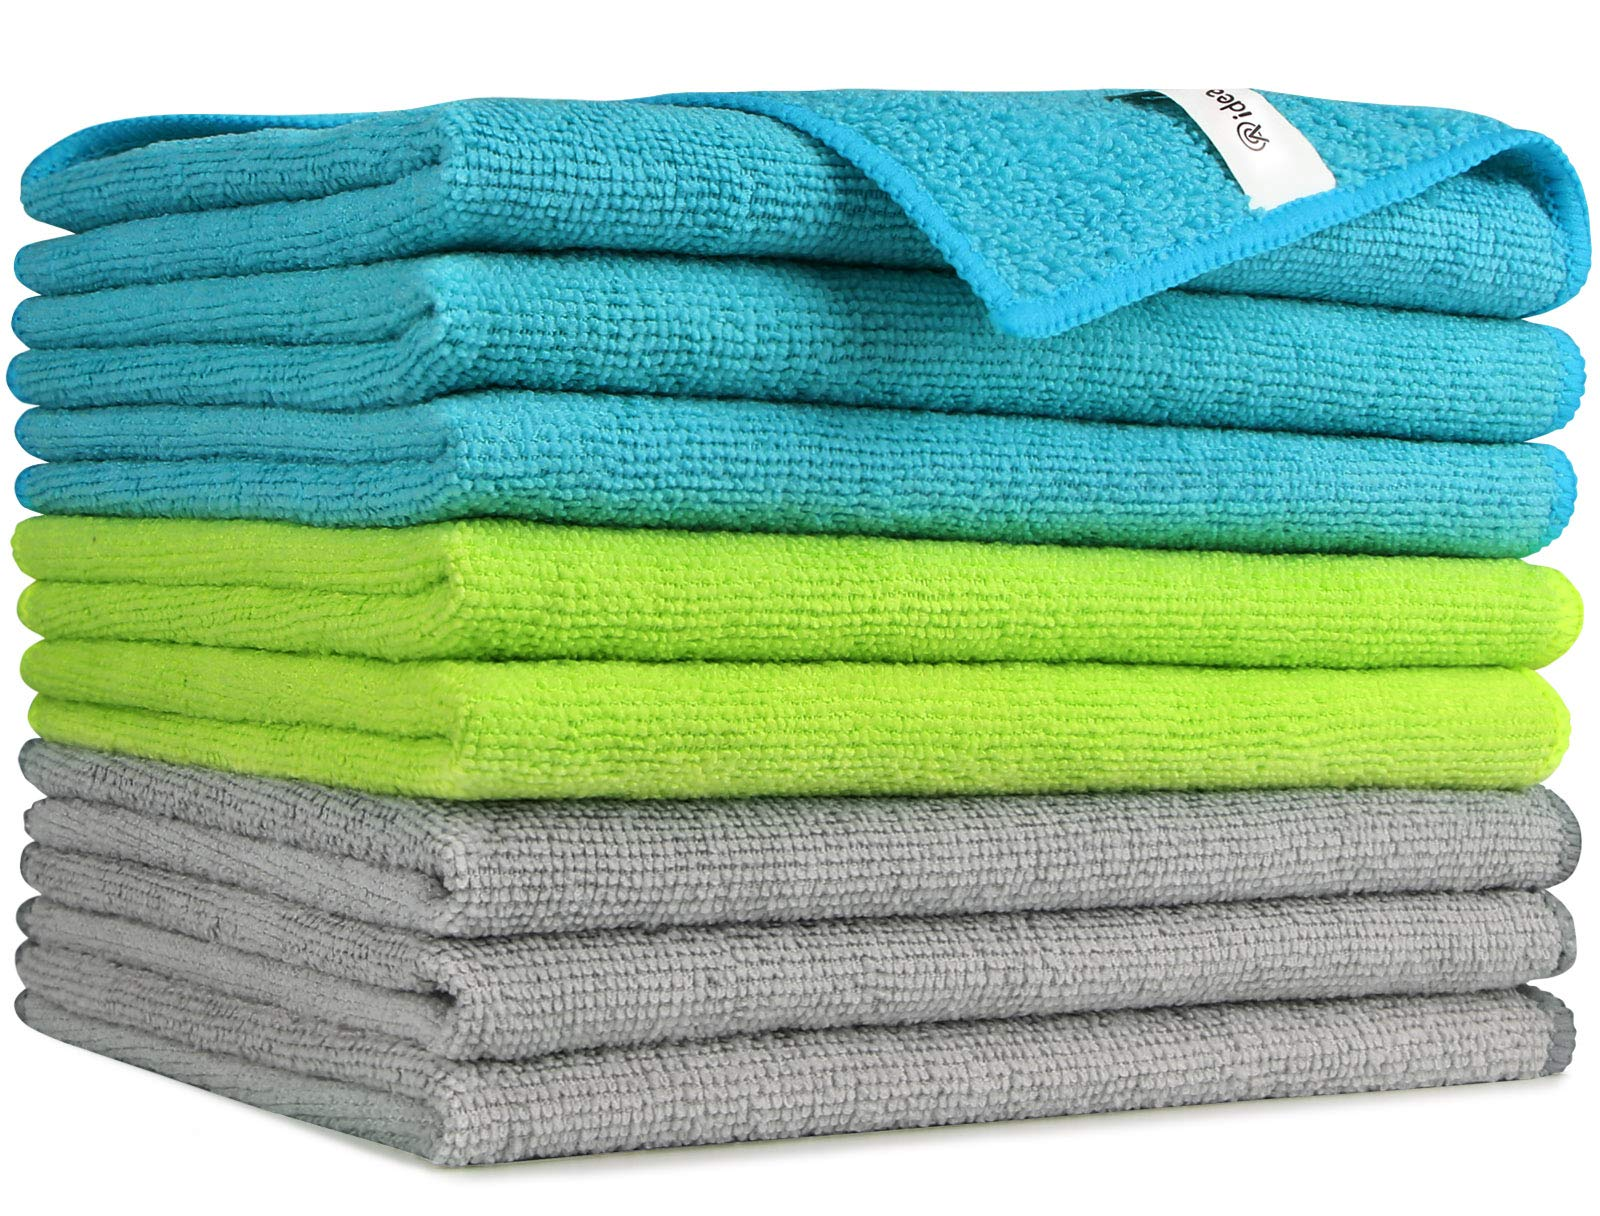 AIDEA Microfiber Cleaning Cloths-8PK, Softer Highly Absorbent, Lint Free Streak Free for House, Kitchen, Car, Window Gifts(12in.x16in.)—8PK